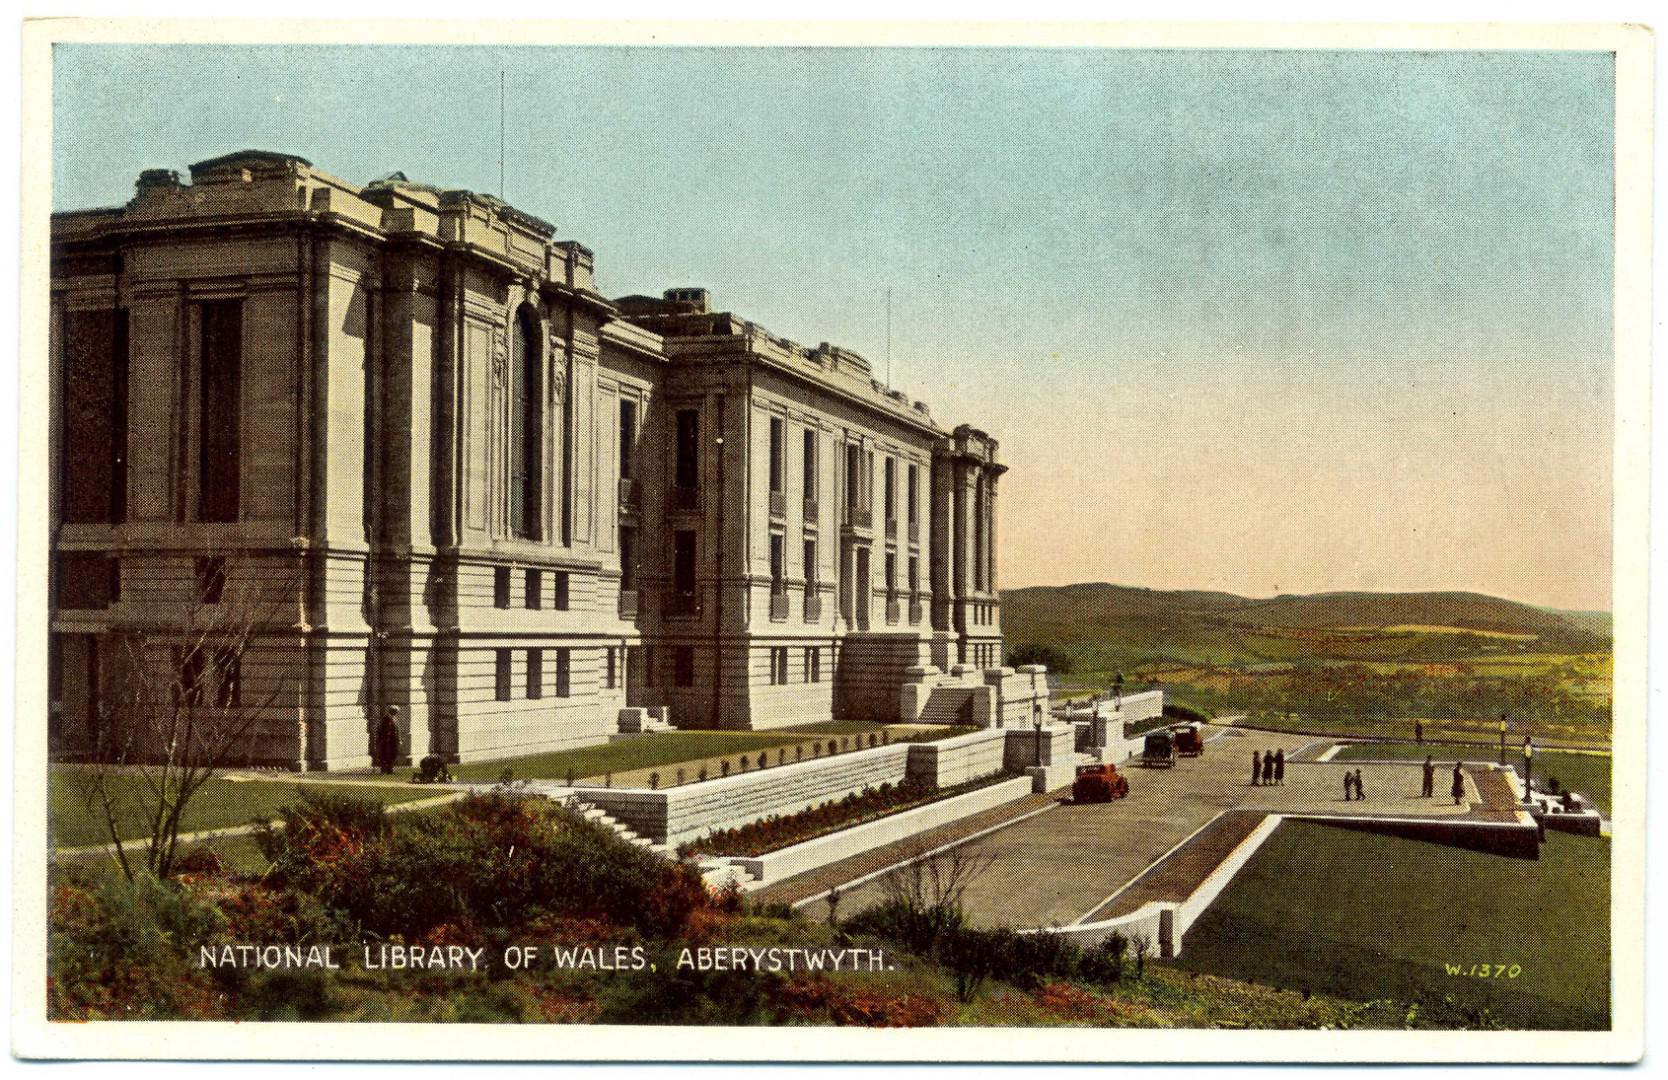 Aberystwyth: National Library of Wales